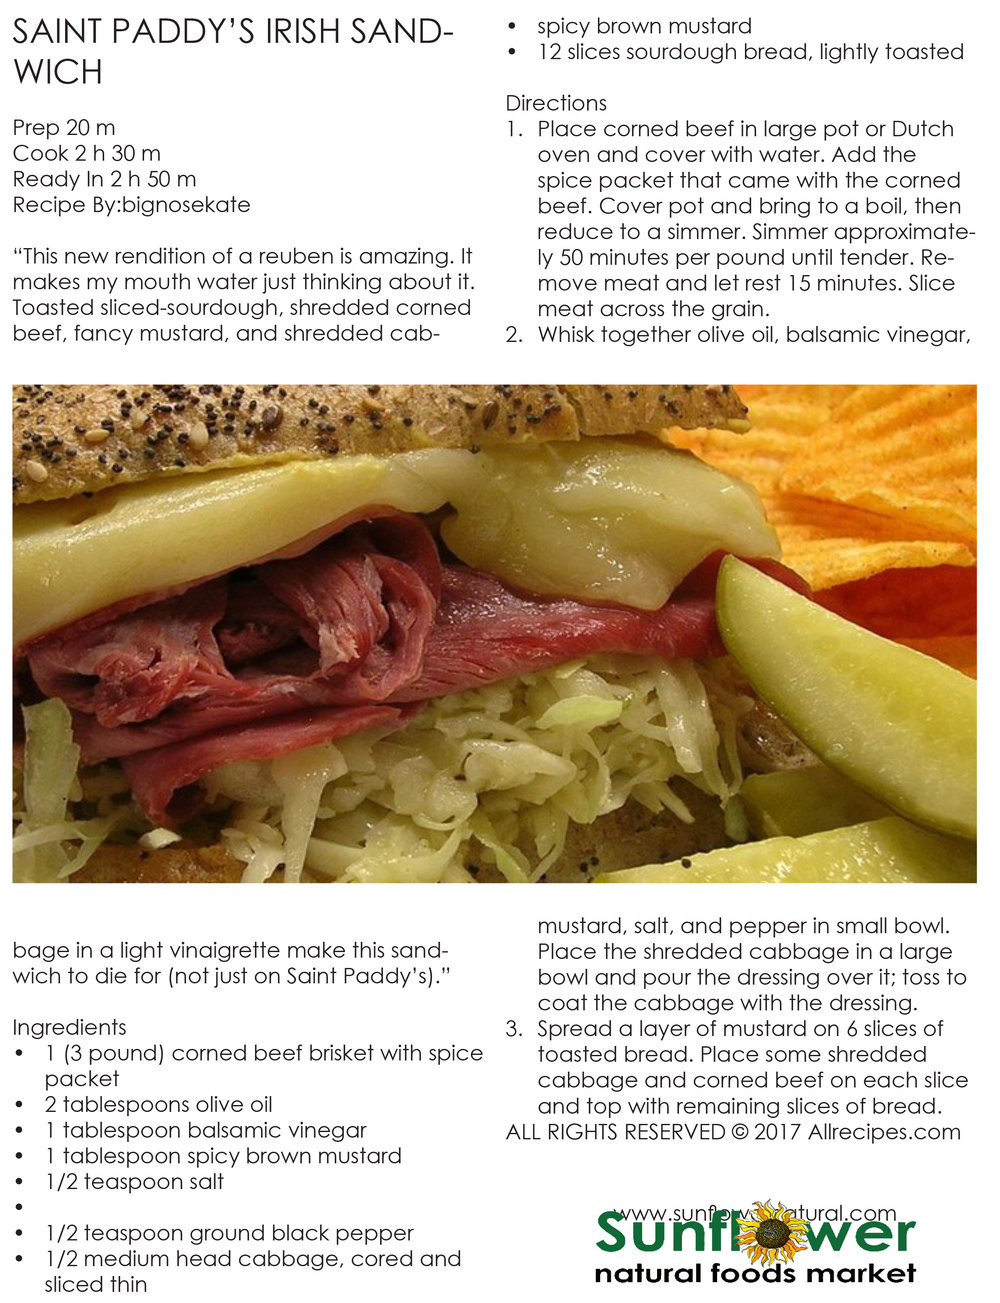 St. Patty's Day Irish Sandwich